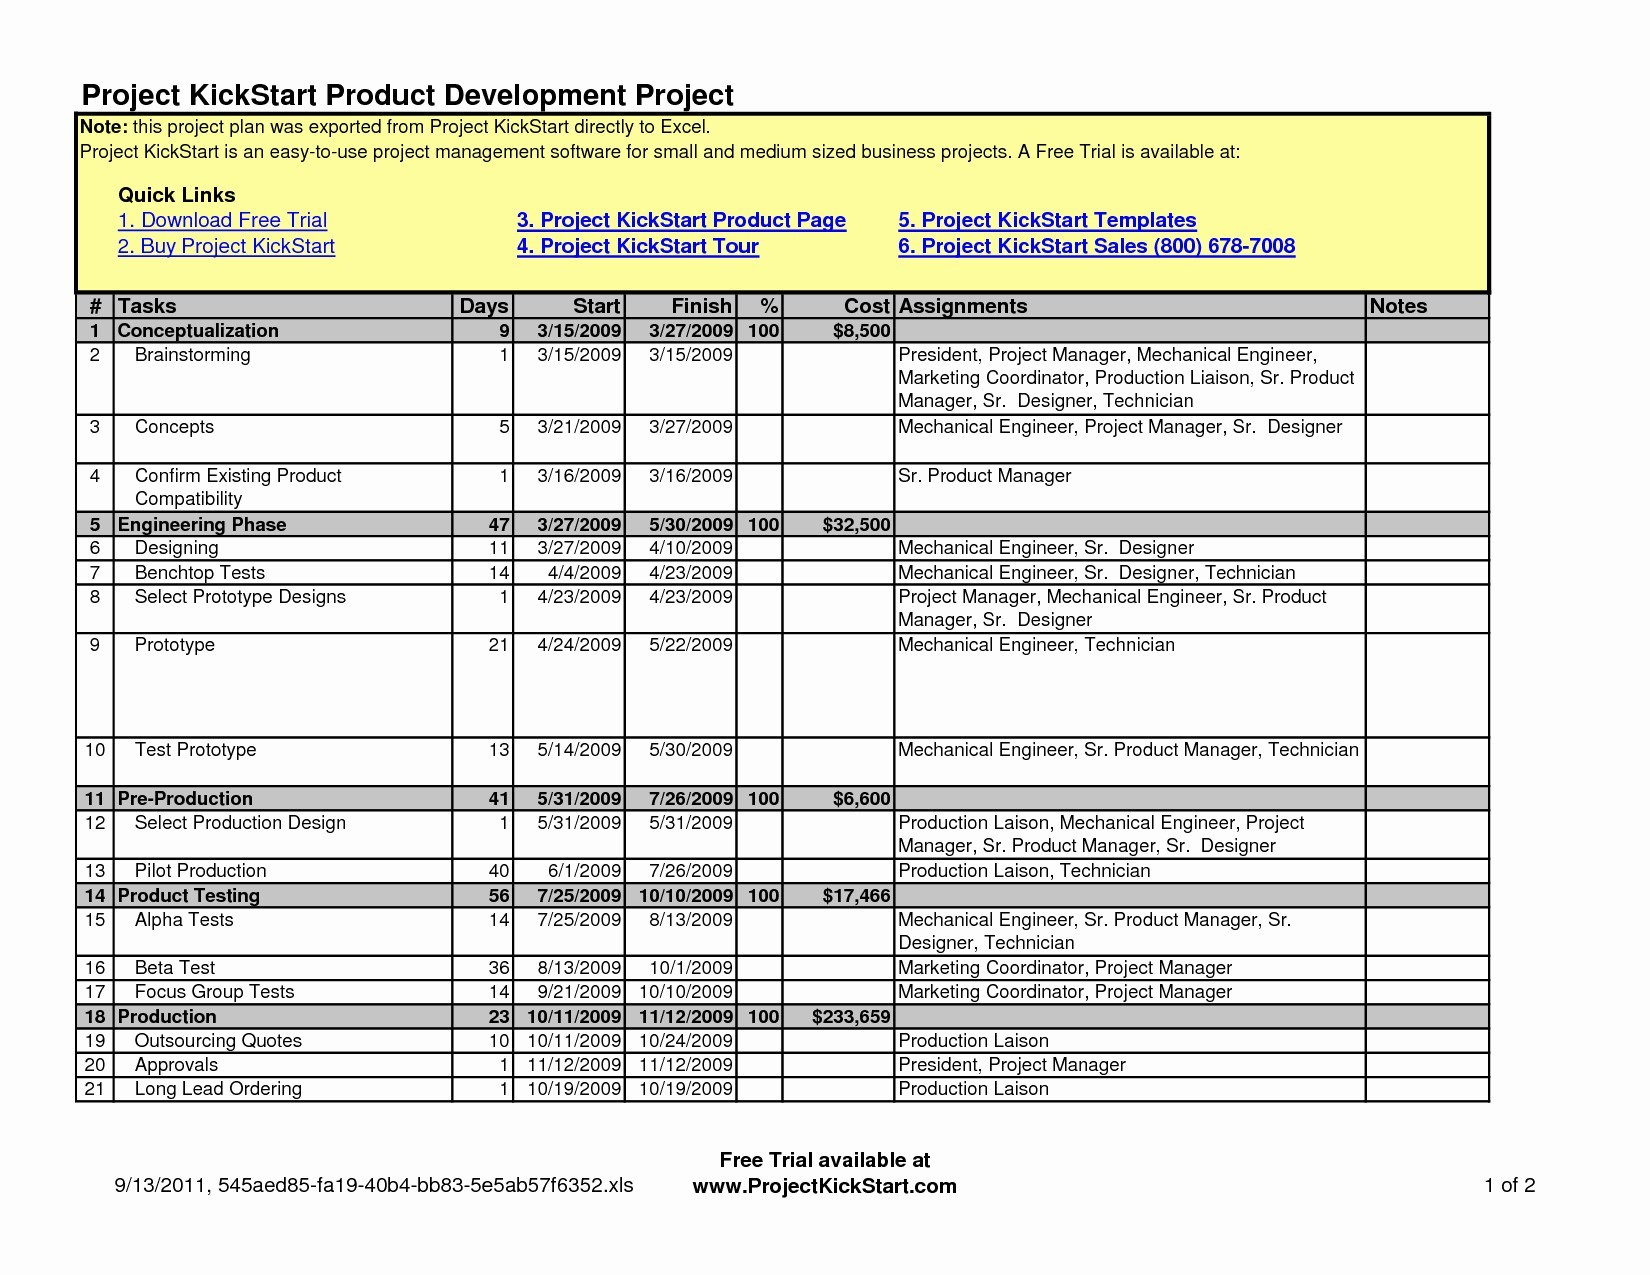 Project Plan Template Excel Free Download Unique Free Excel Project Throughout Project Management Templates For Excel Free Download